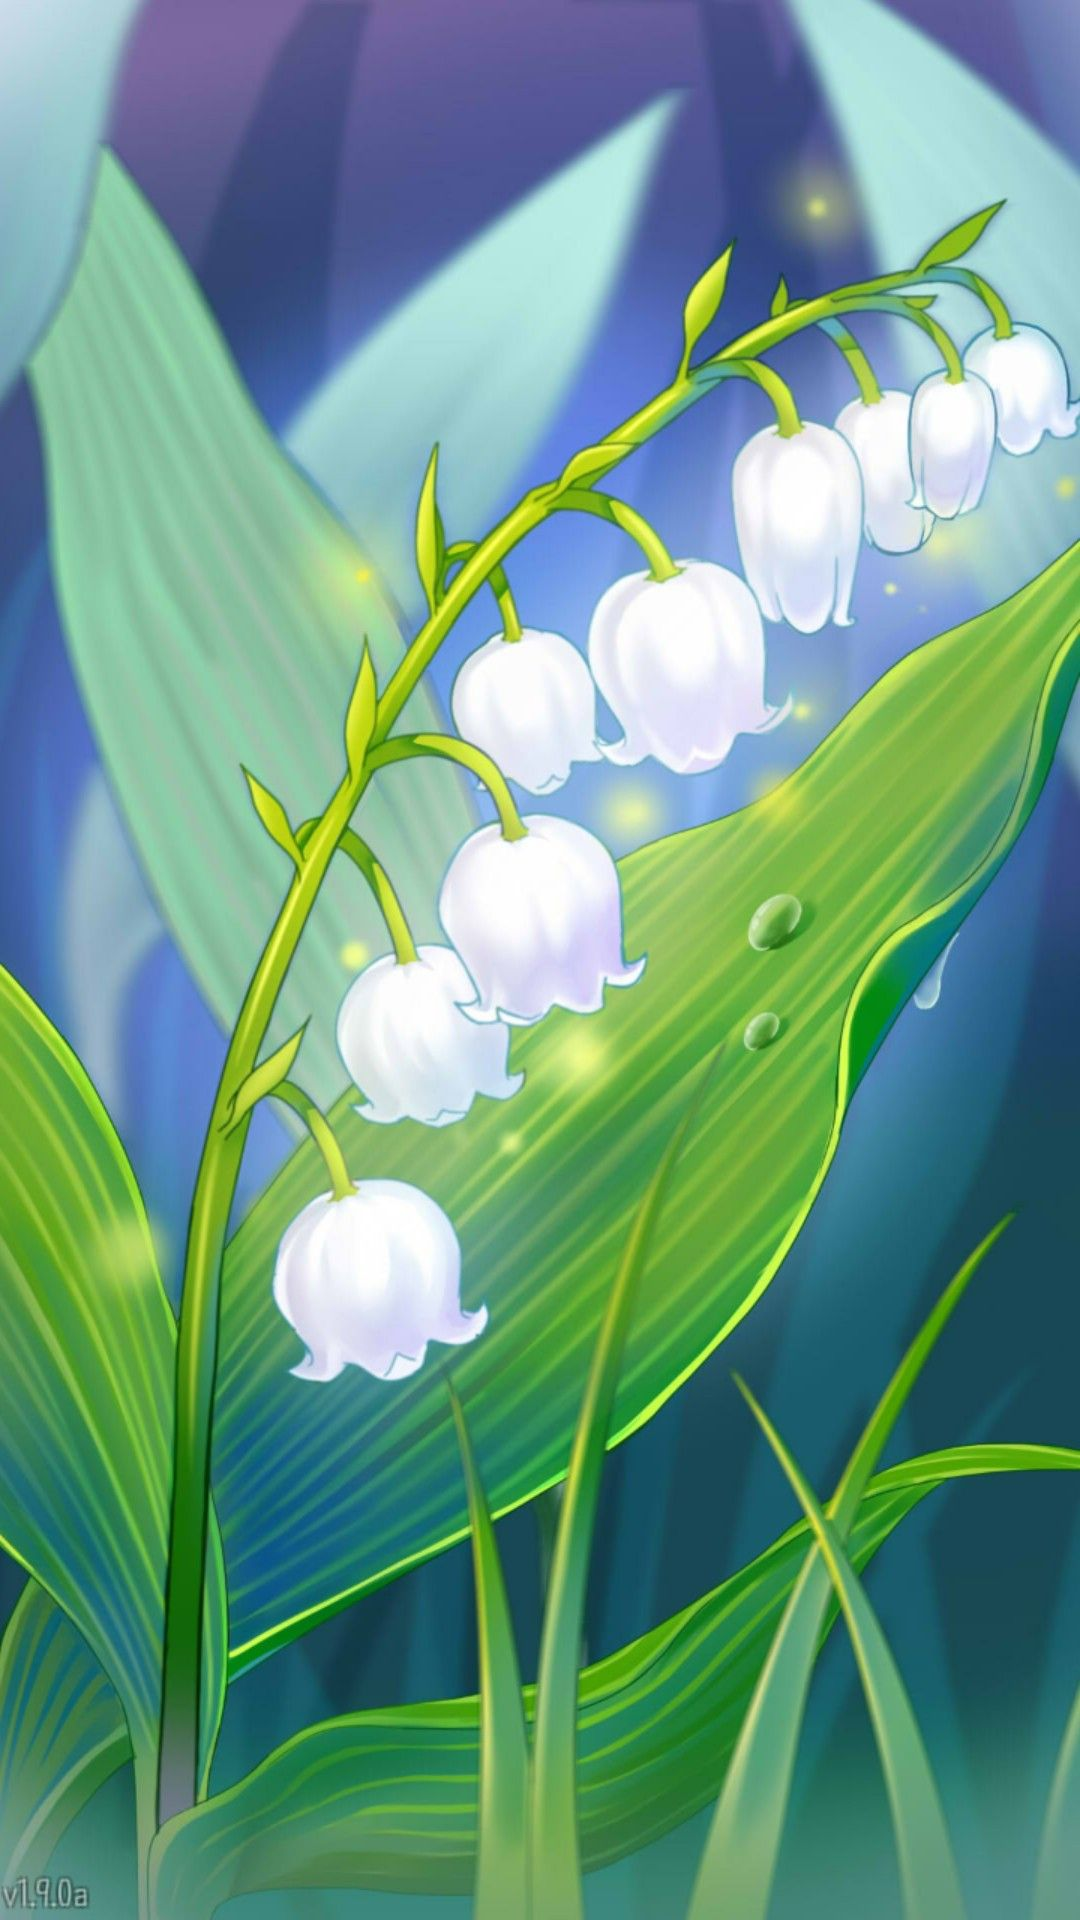 Rays Route Lily Of The Valley Lily Of The Valley Has The Flower